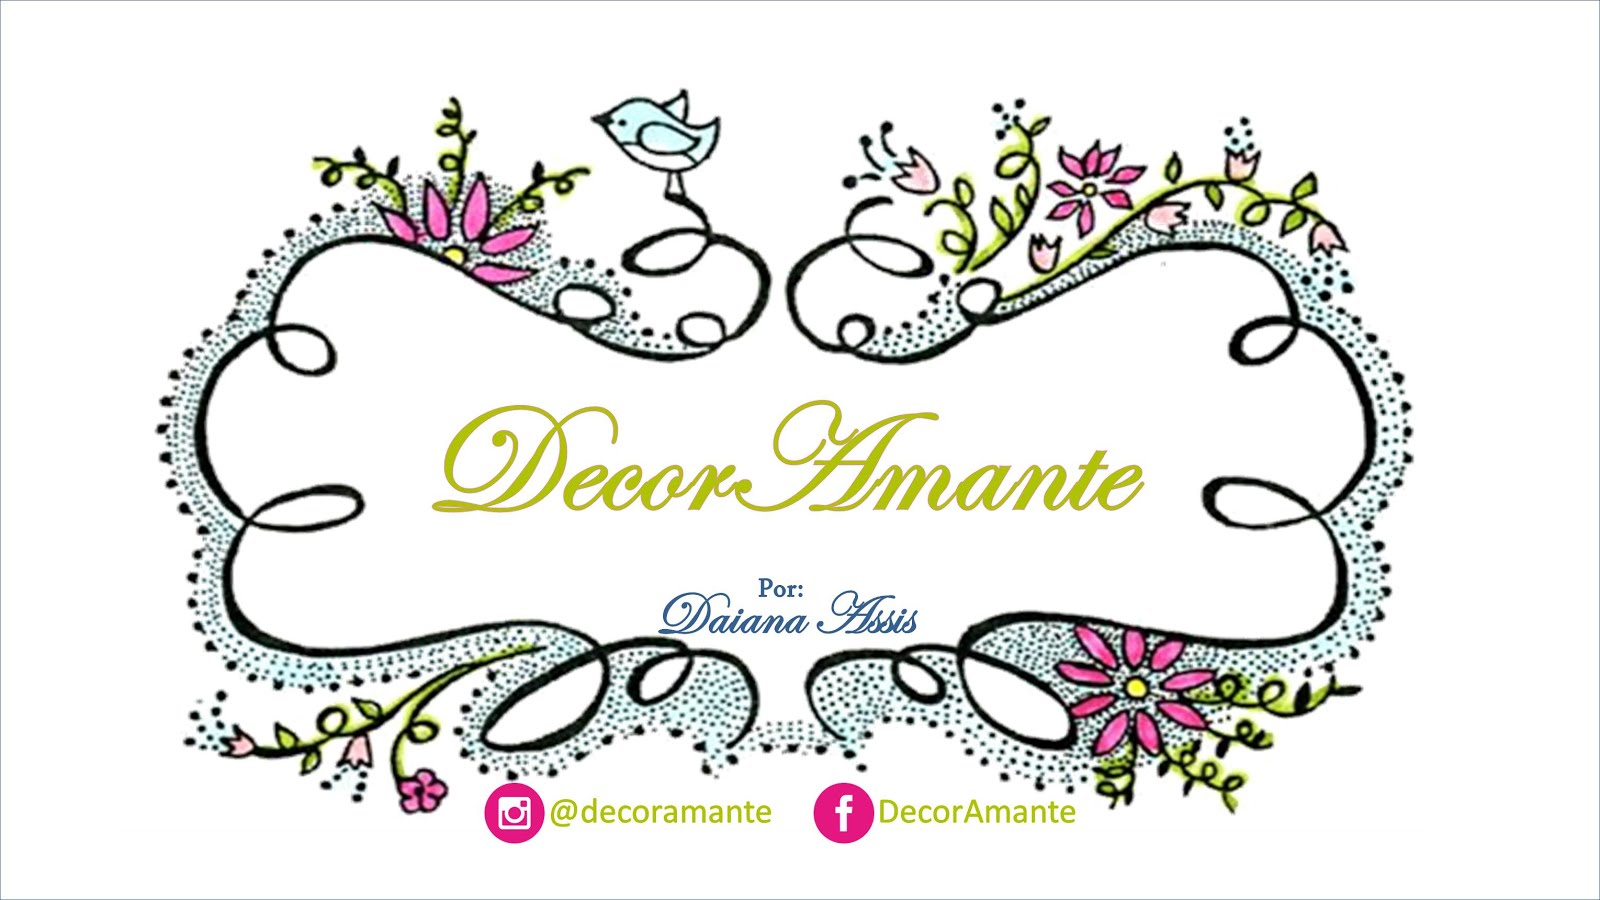 DecorAmante